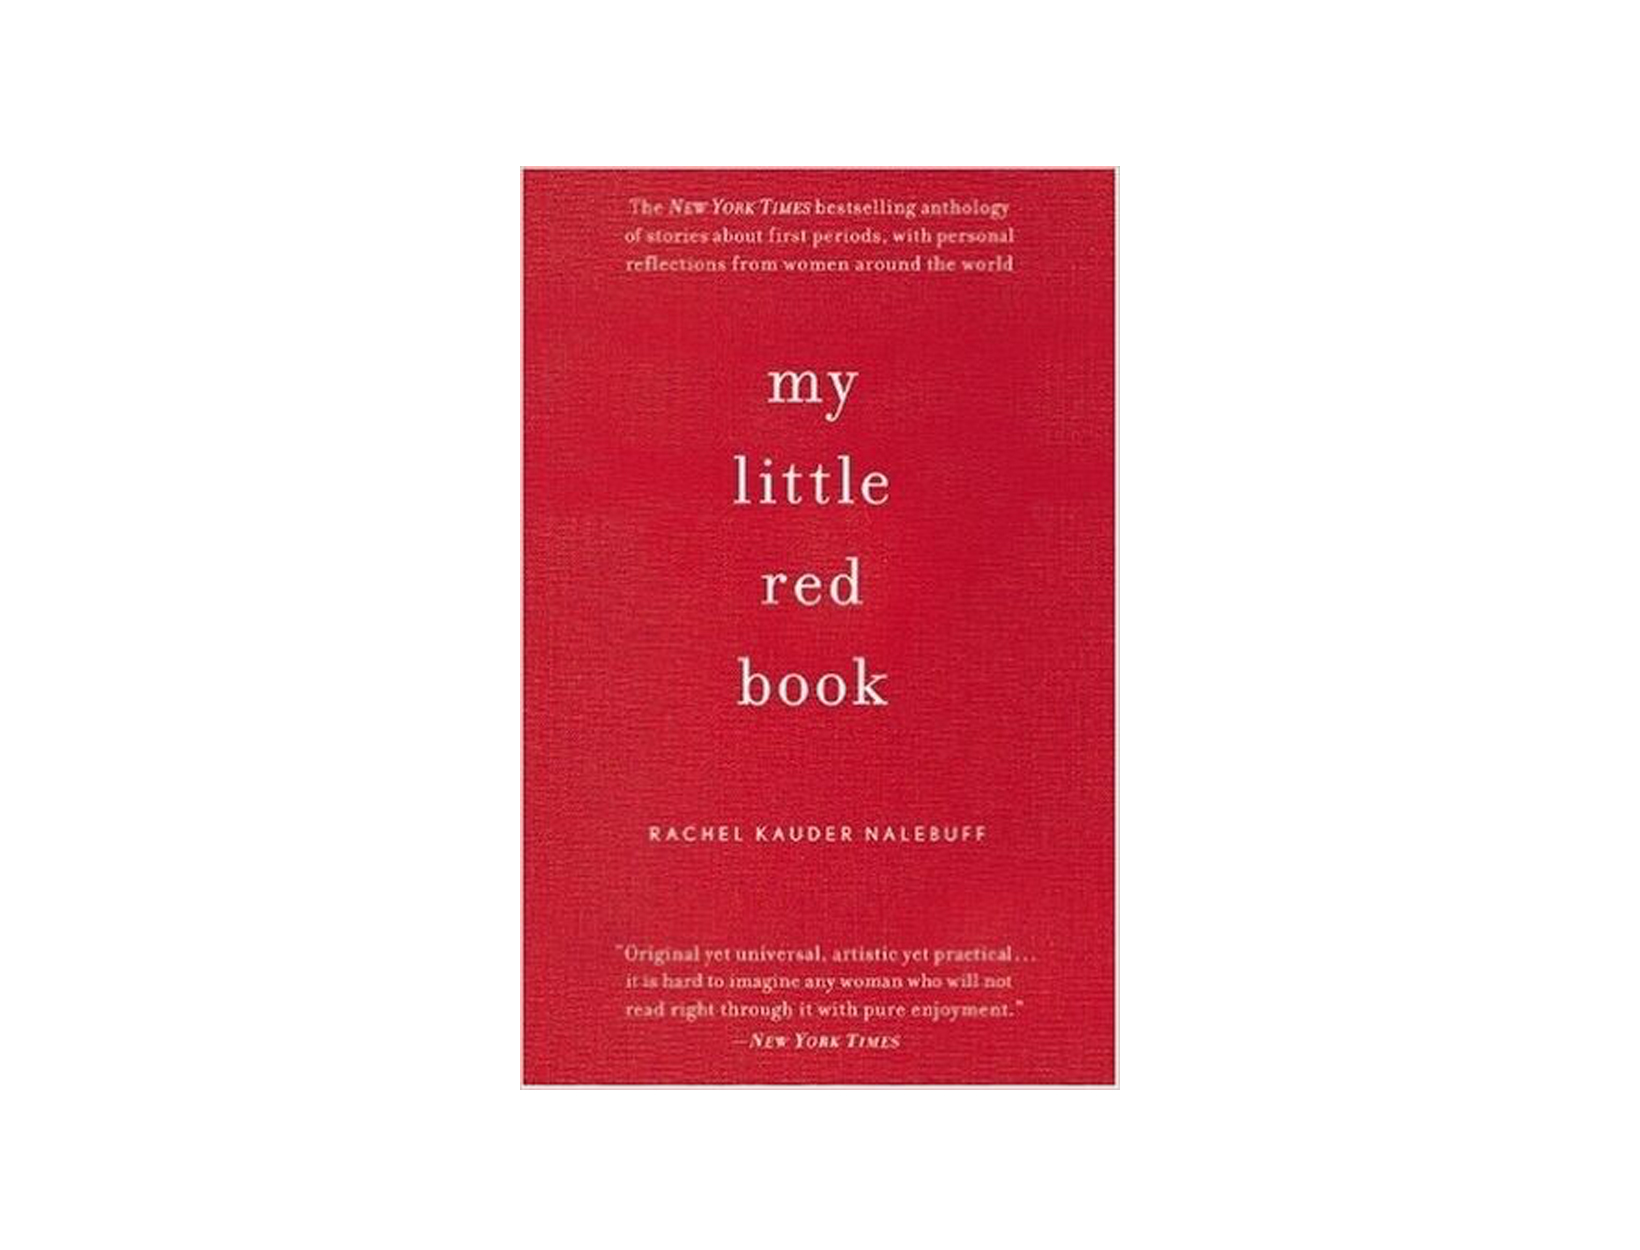 My Little Red Book by Rachel Kauder Nalebuff